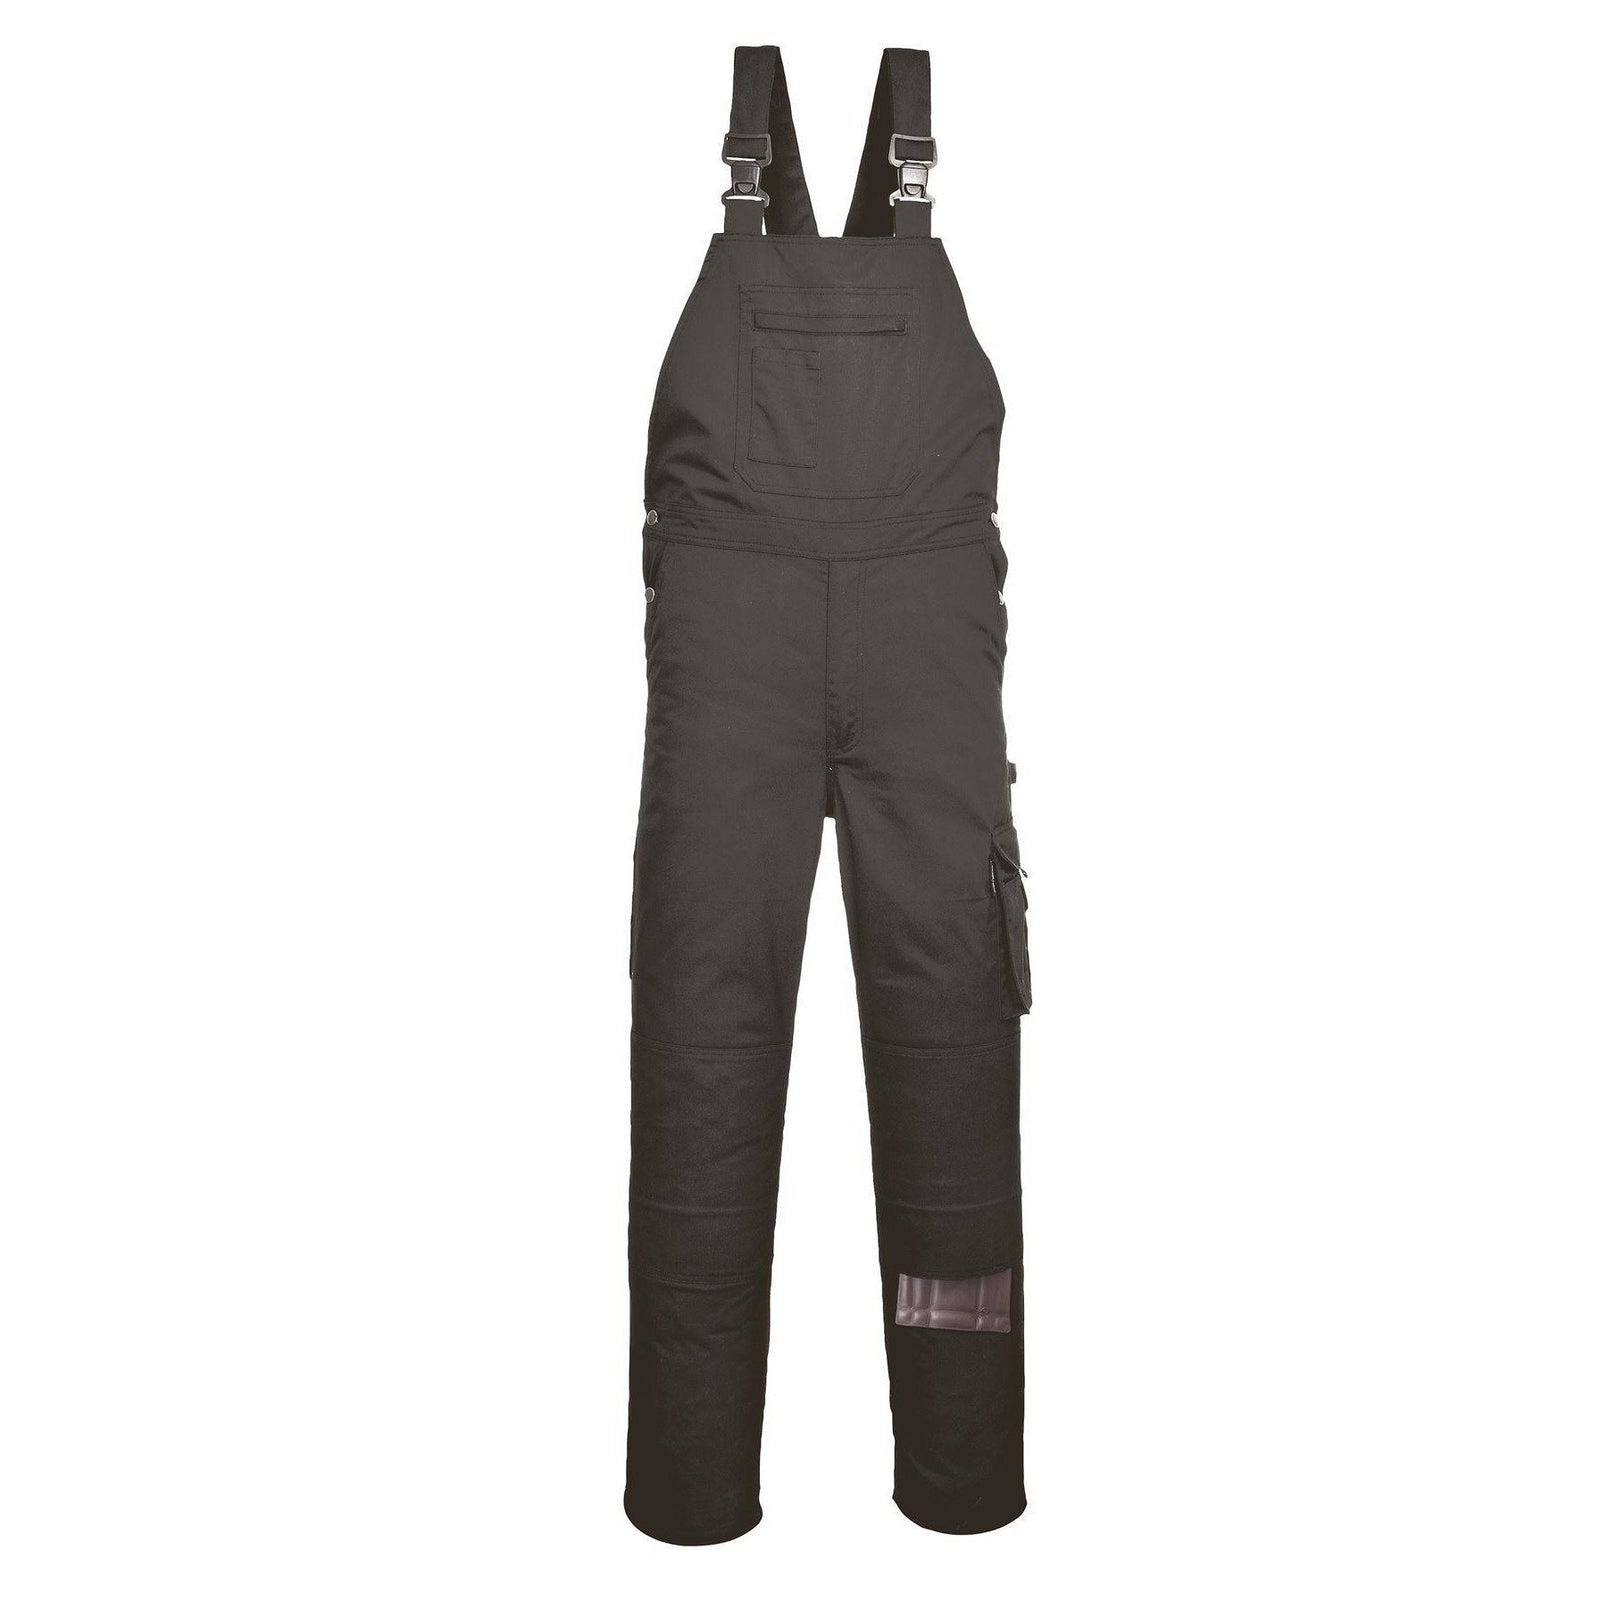 Portwest Slate Bib & Brace KS16 - reid outdoors